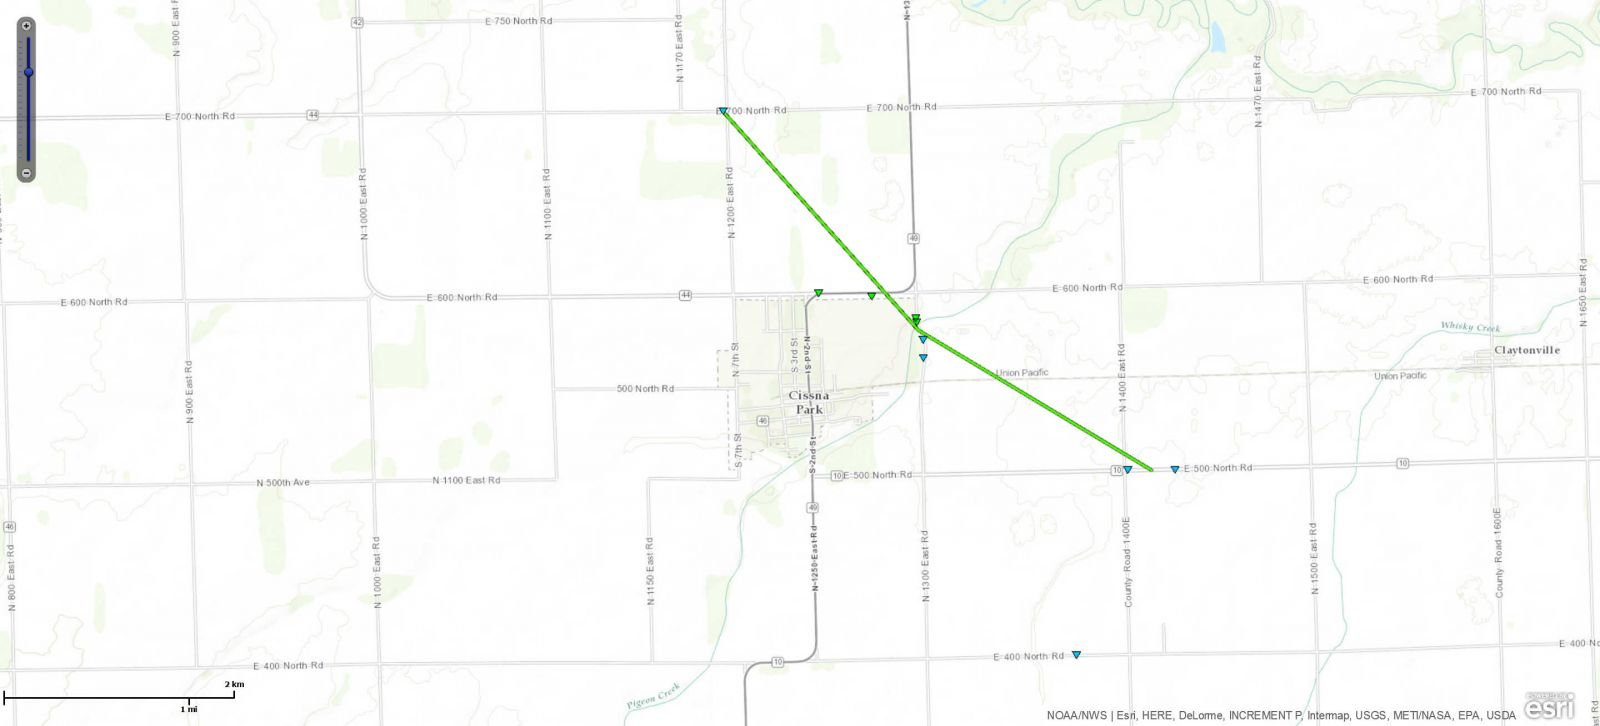 Track Map of Cissna Park, IL tornado